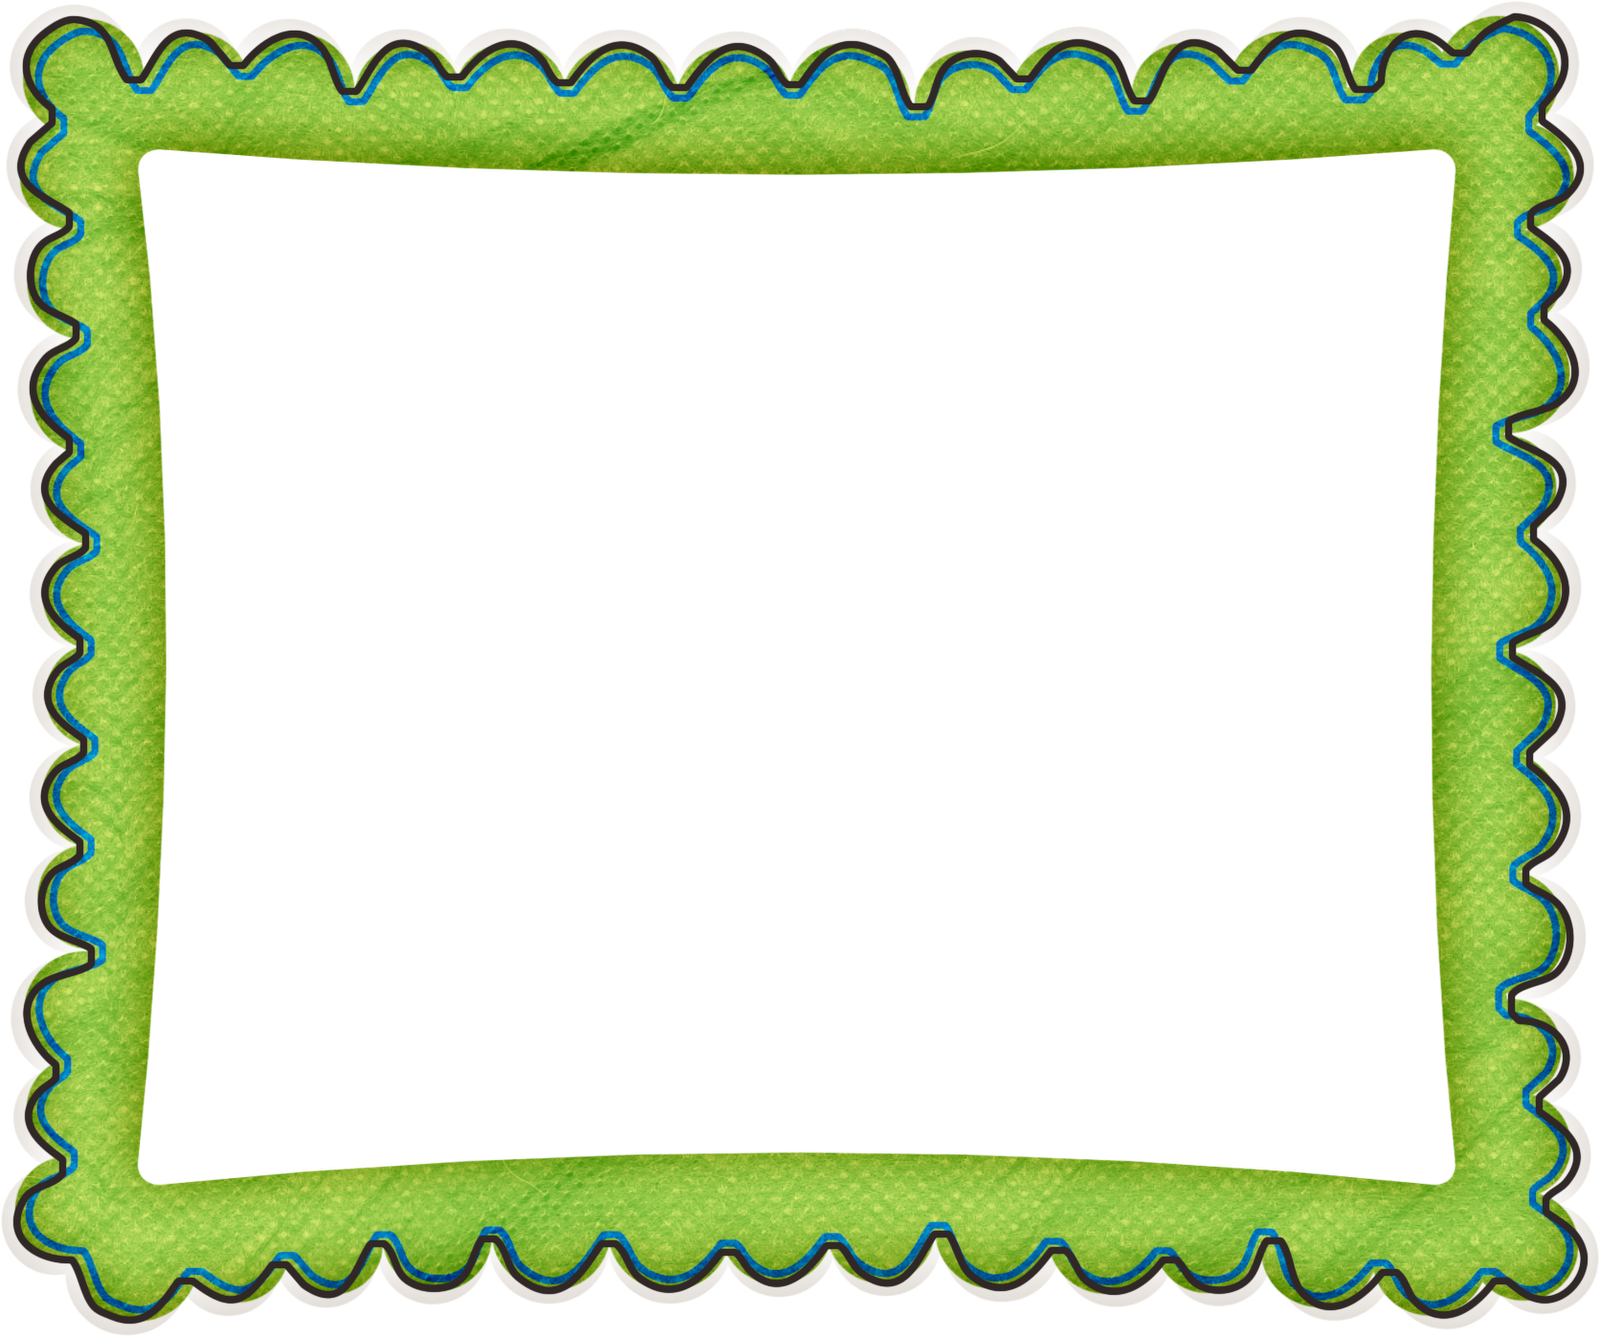 photo about Printable Frames named Wavy Border: Absolutely free Printable Frames, Borders and Labels. Oh